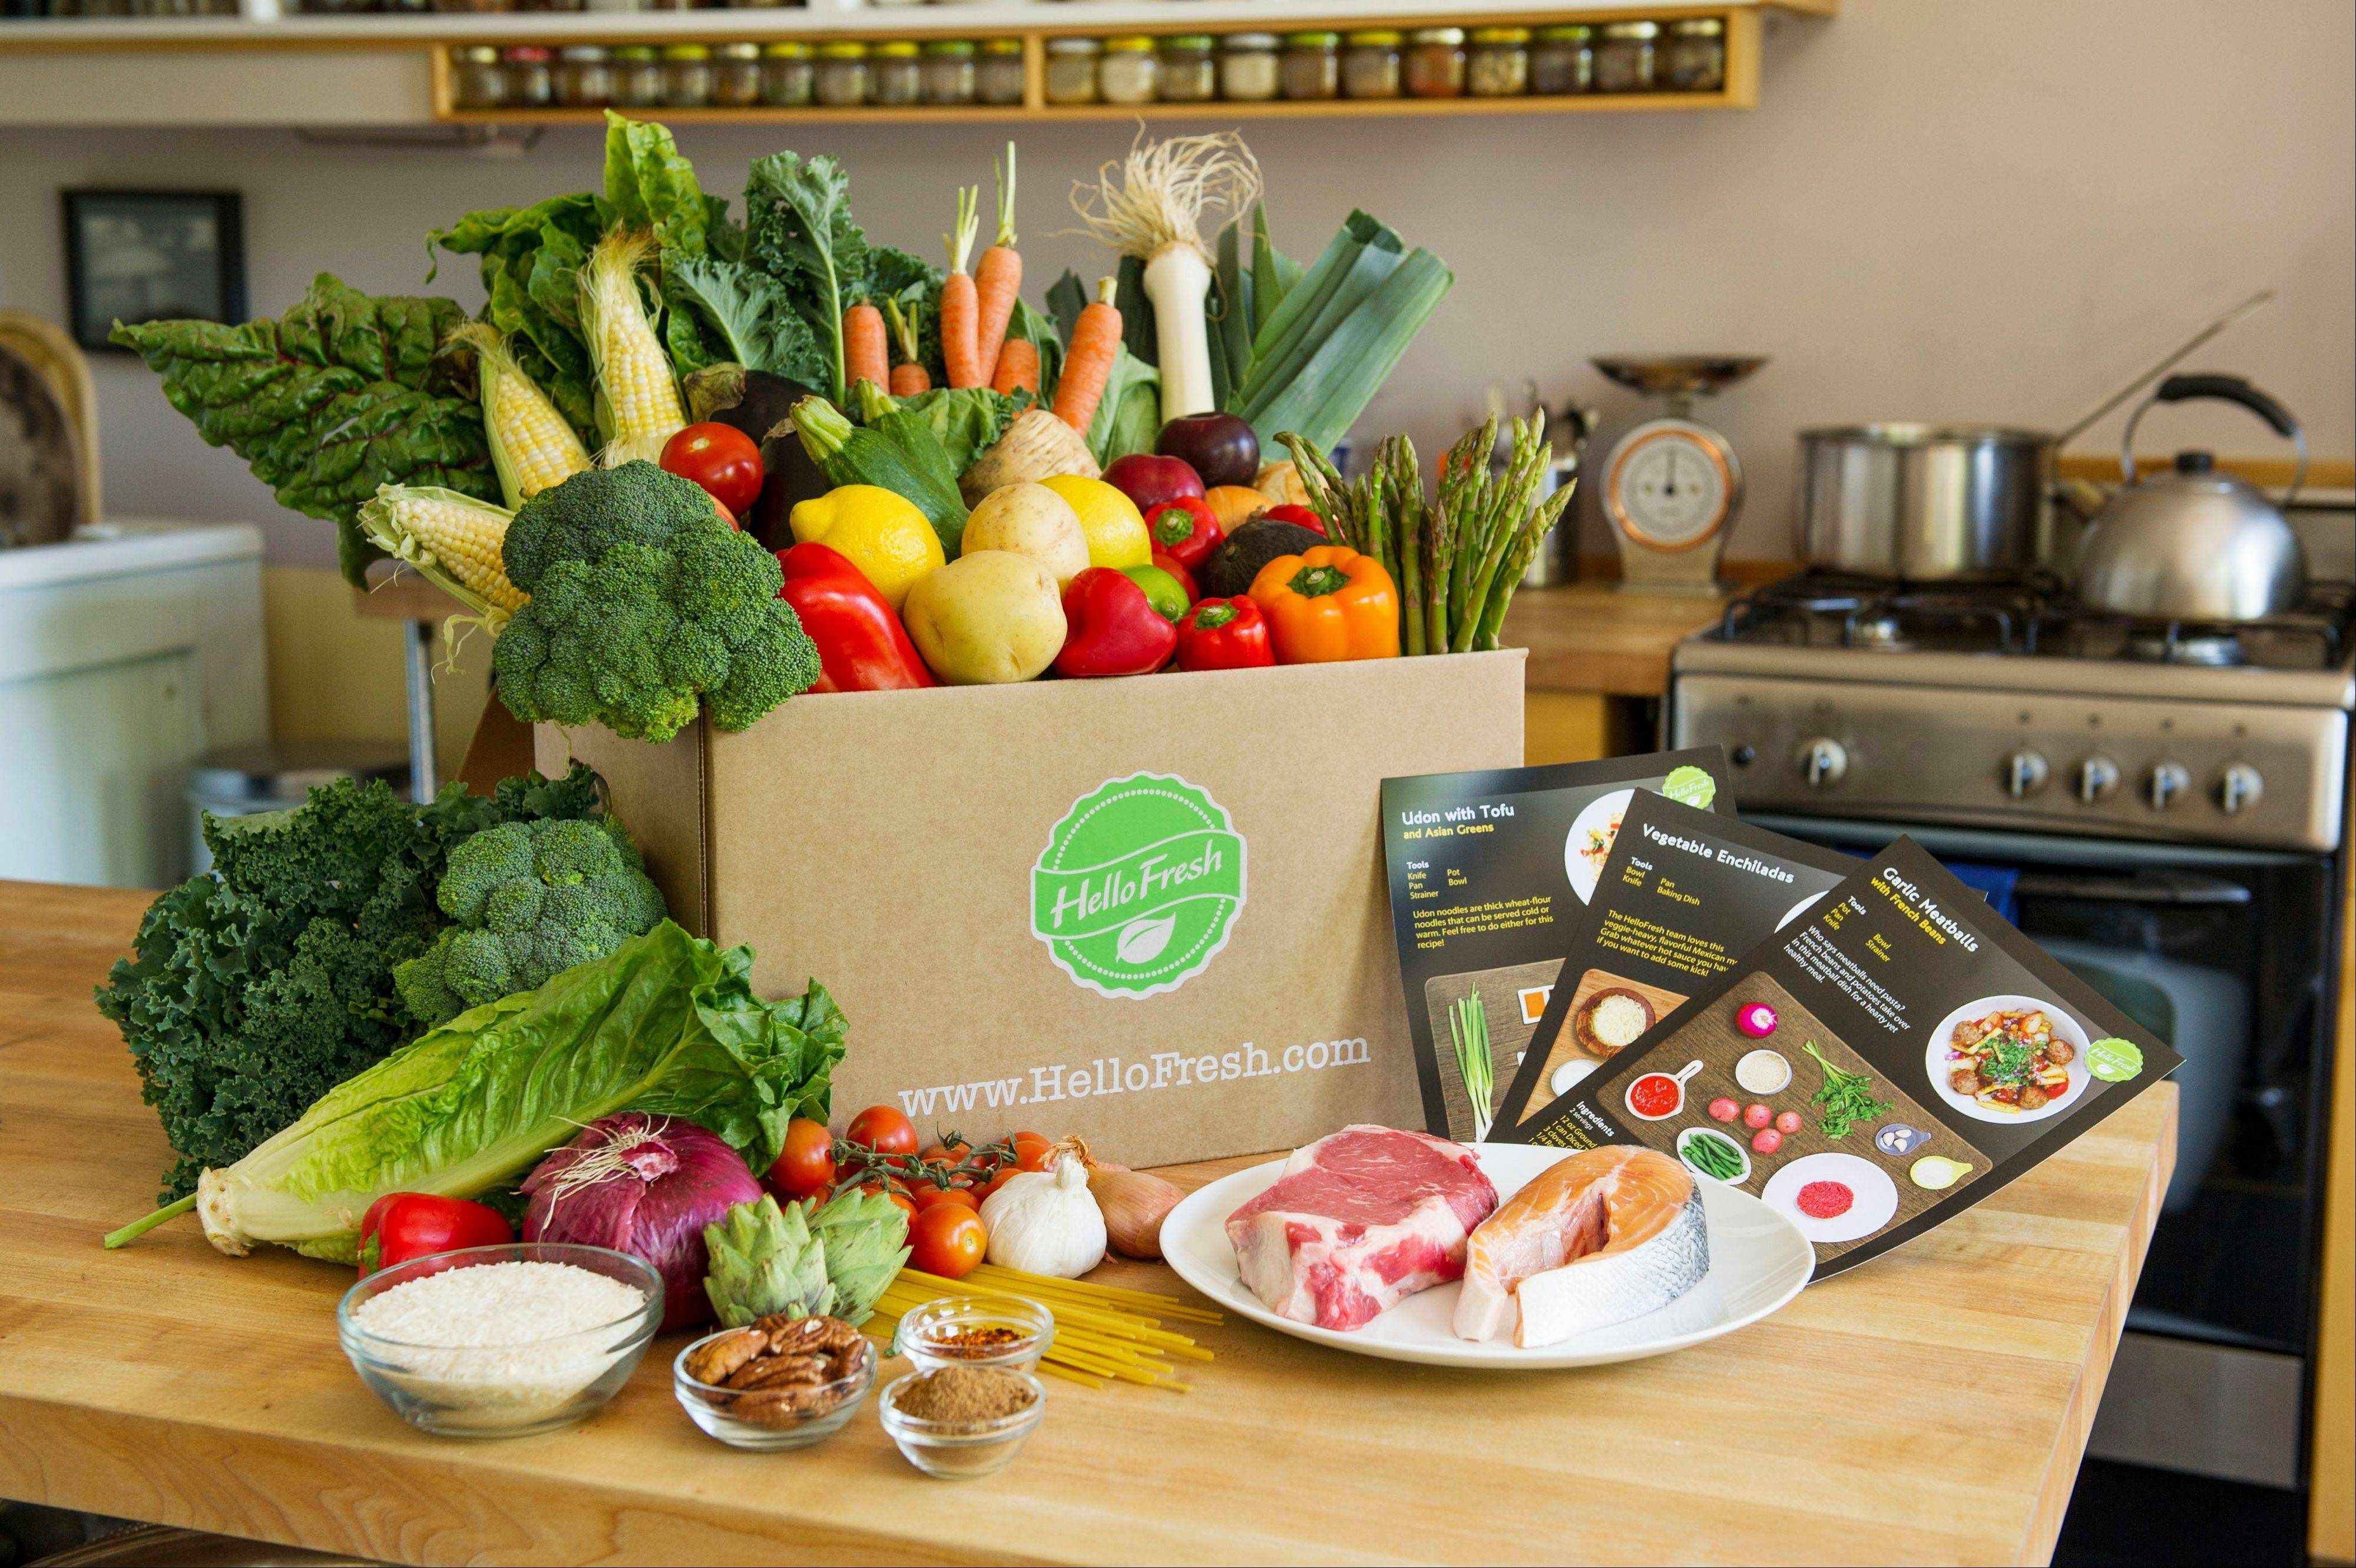 HelloFresh, based in New York, ships ready-to-cook dinner kits to subscribers with everything needed to whip up a meal, from the raw meat and fish to vegetables and spices. Targeting busy consumers, Blue Apron and fellow startups HelloFresh and Plated are trying to make cooking at home easier and cheaper than dining out or ordering in.